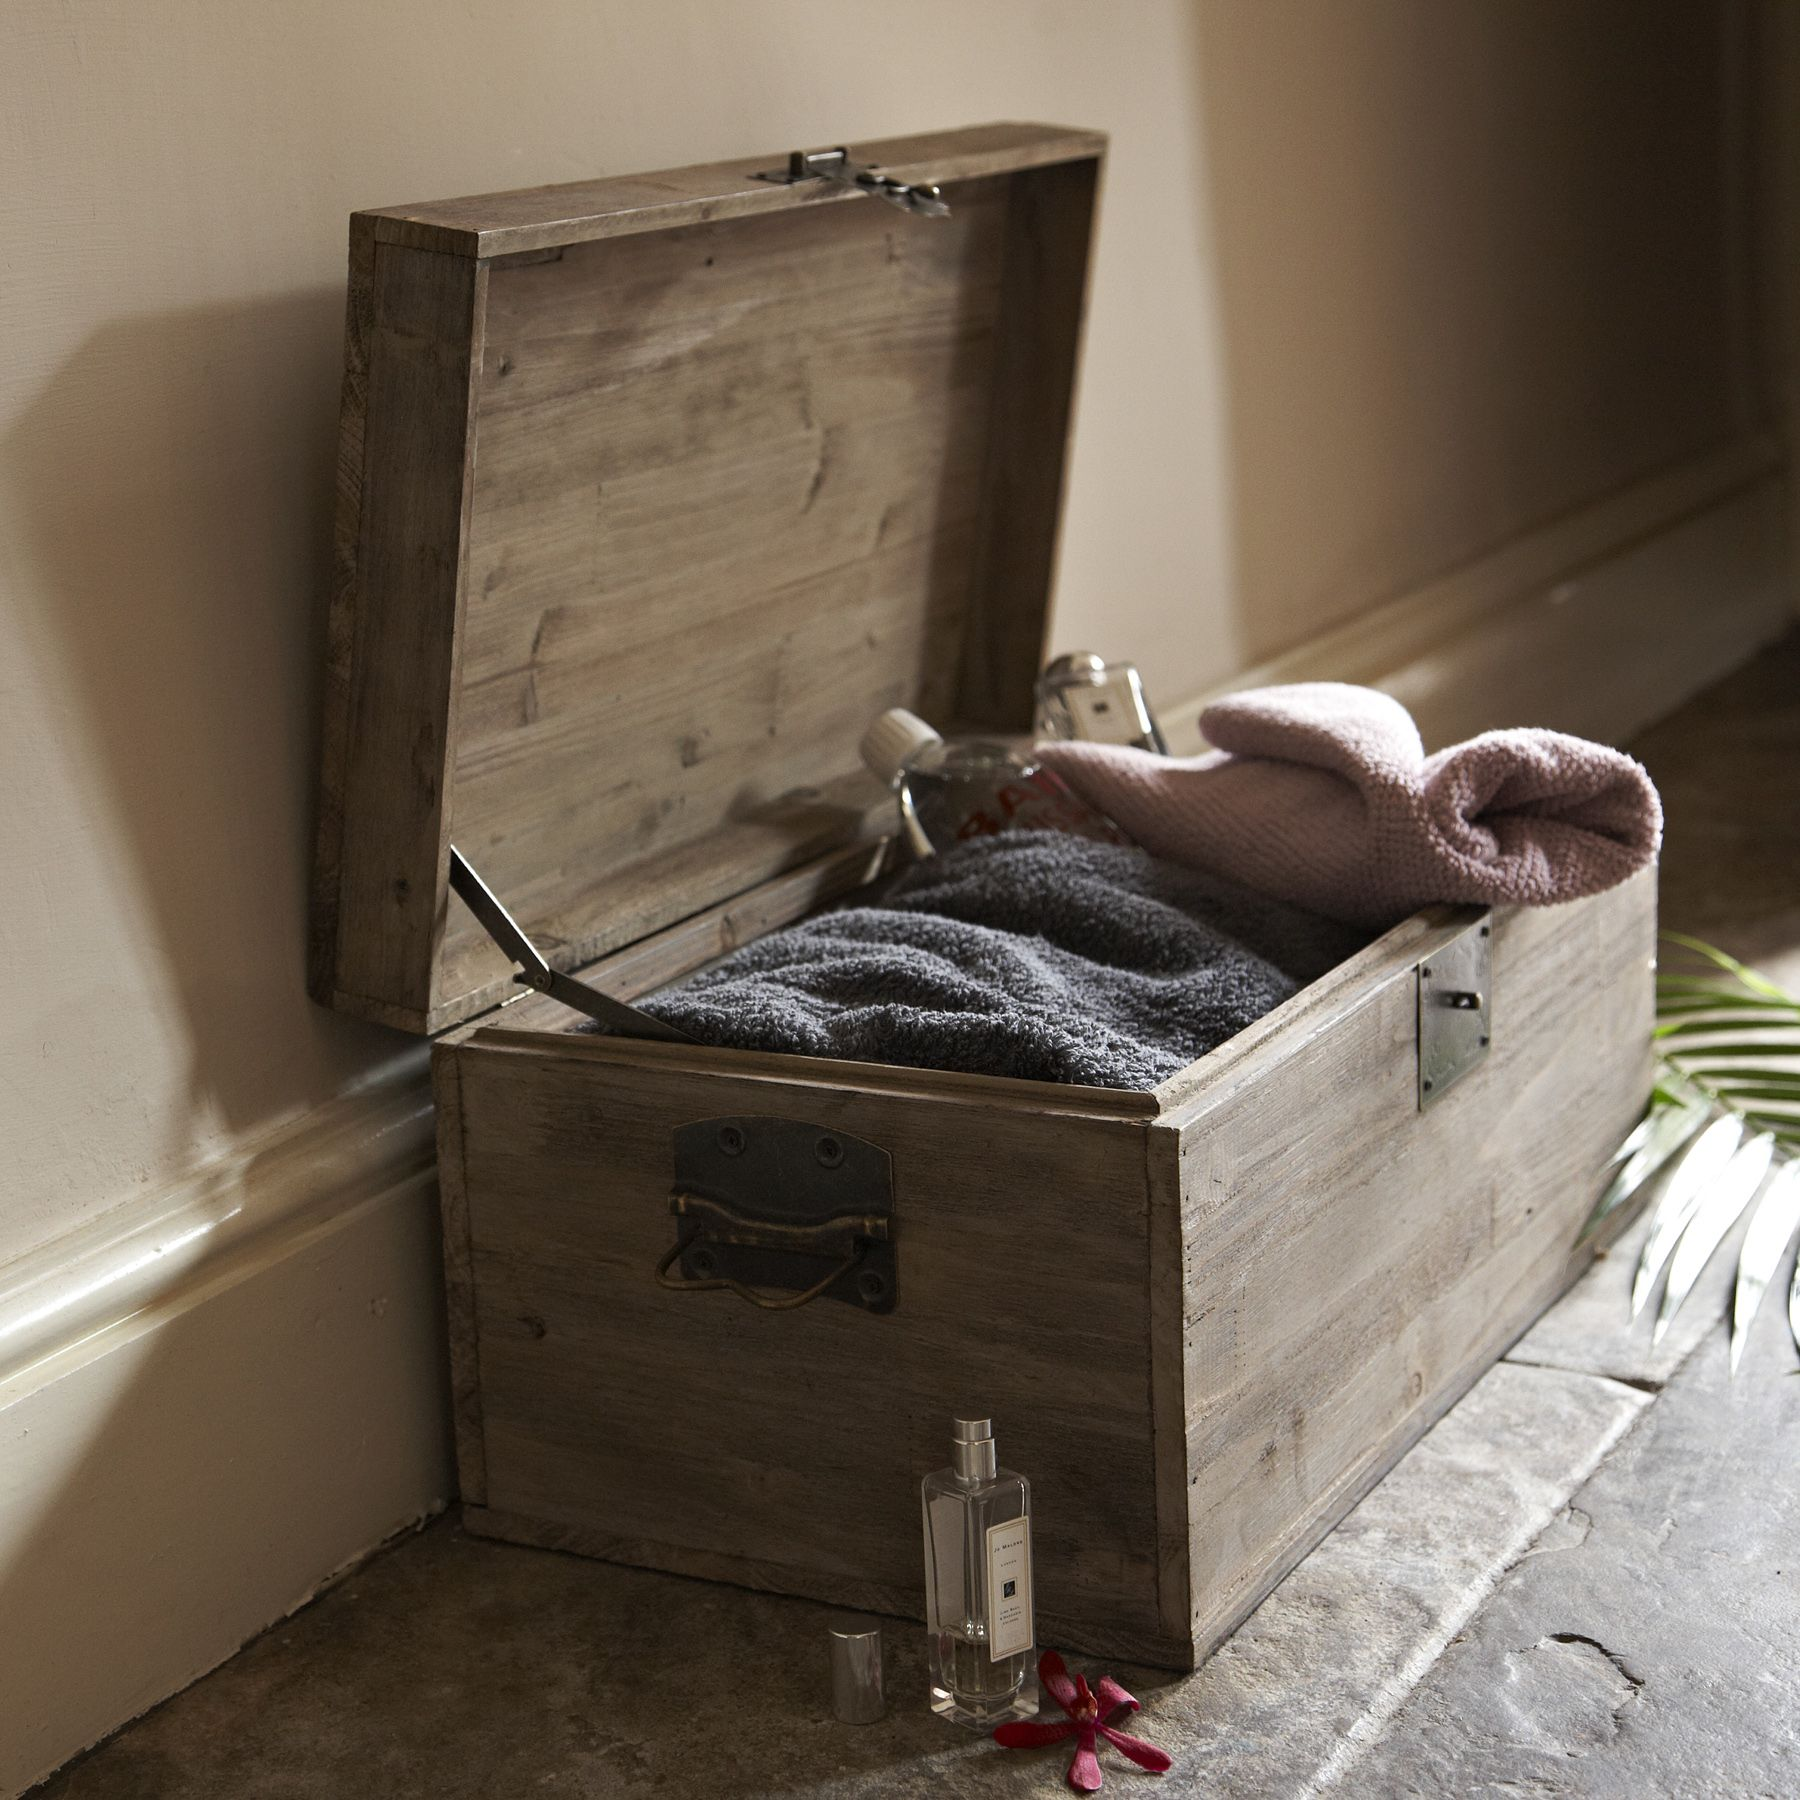 Wooden Trunk To Store Blankets And Pillows At The Foot Of The Bed